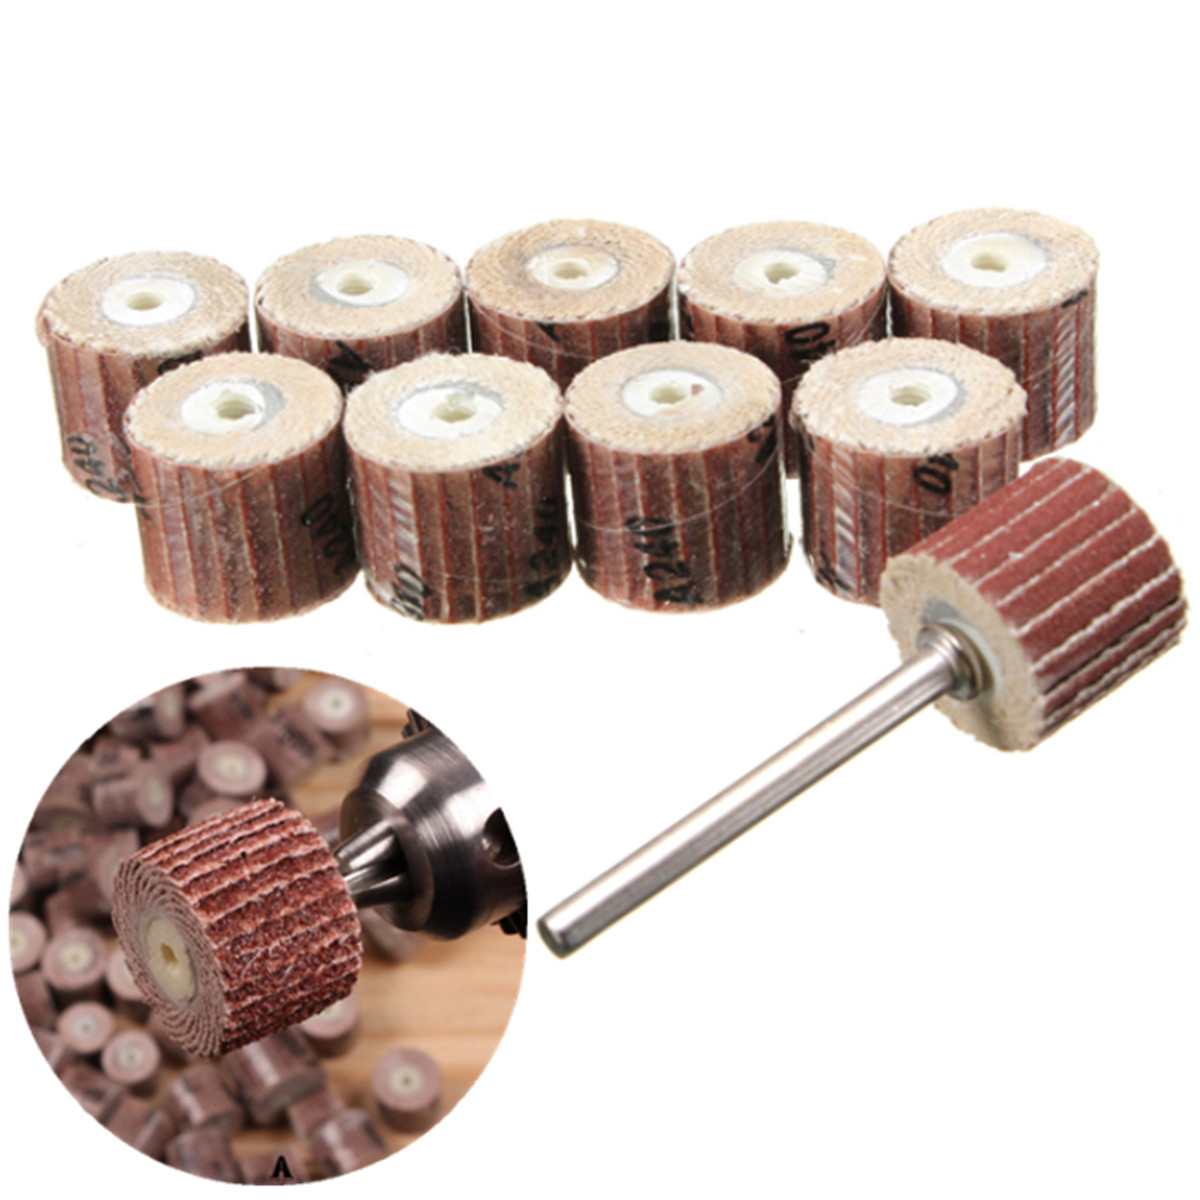 10pcs 12mm Sandpaper Grinding Wheel 80-600 Grit for Rotary Tools